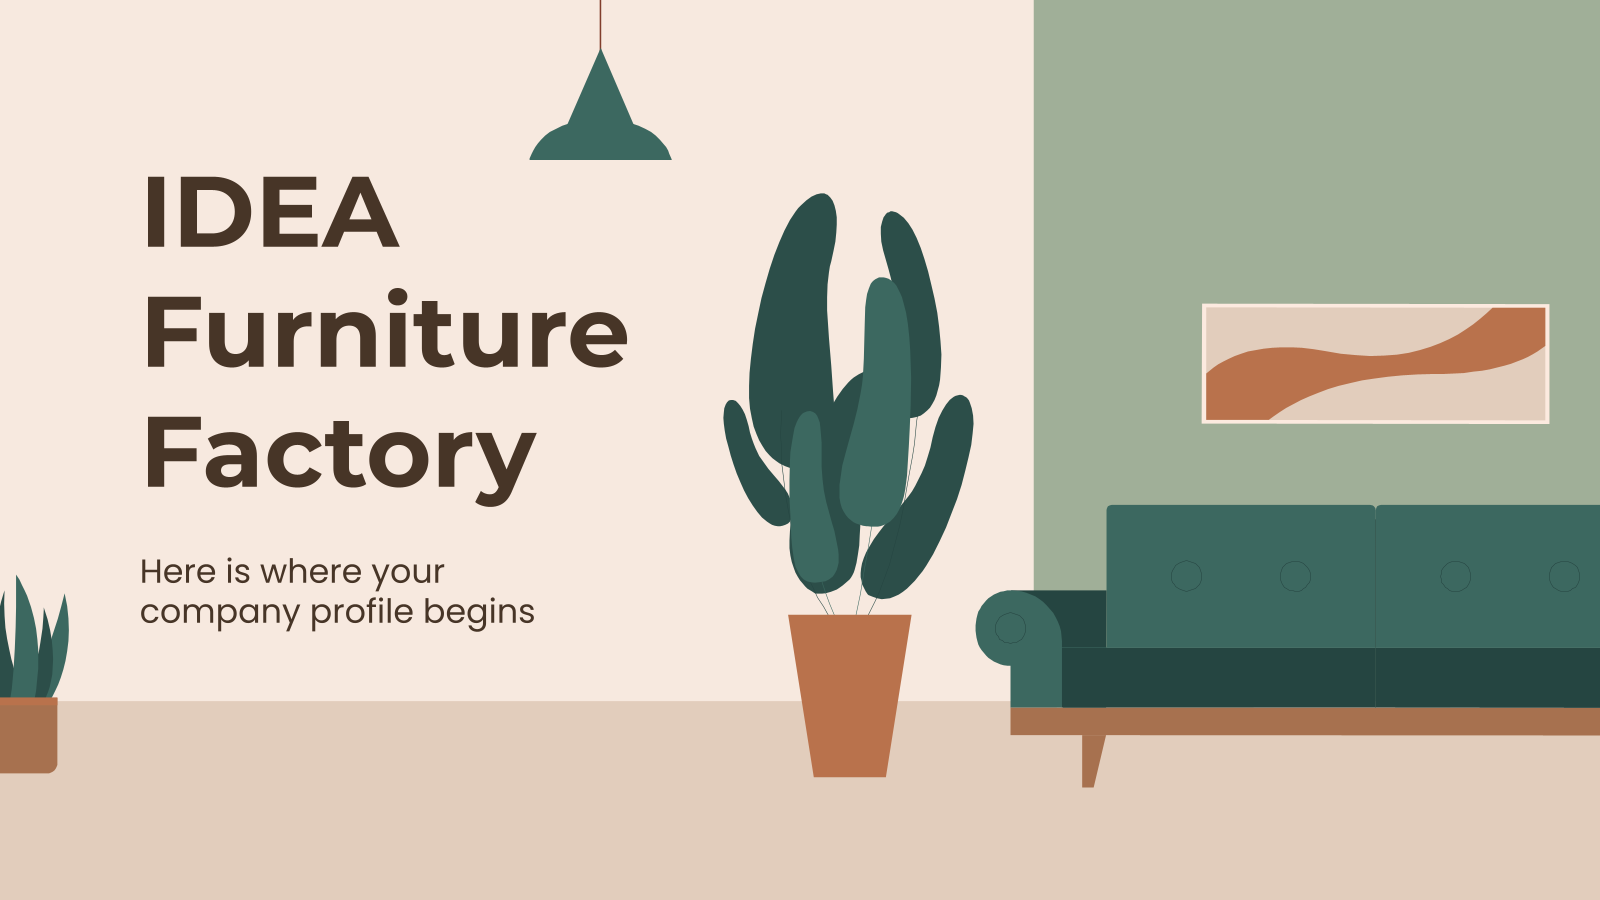 IDEA Furniture Factory Company Profile presentation template